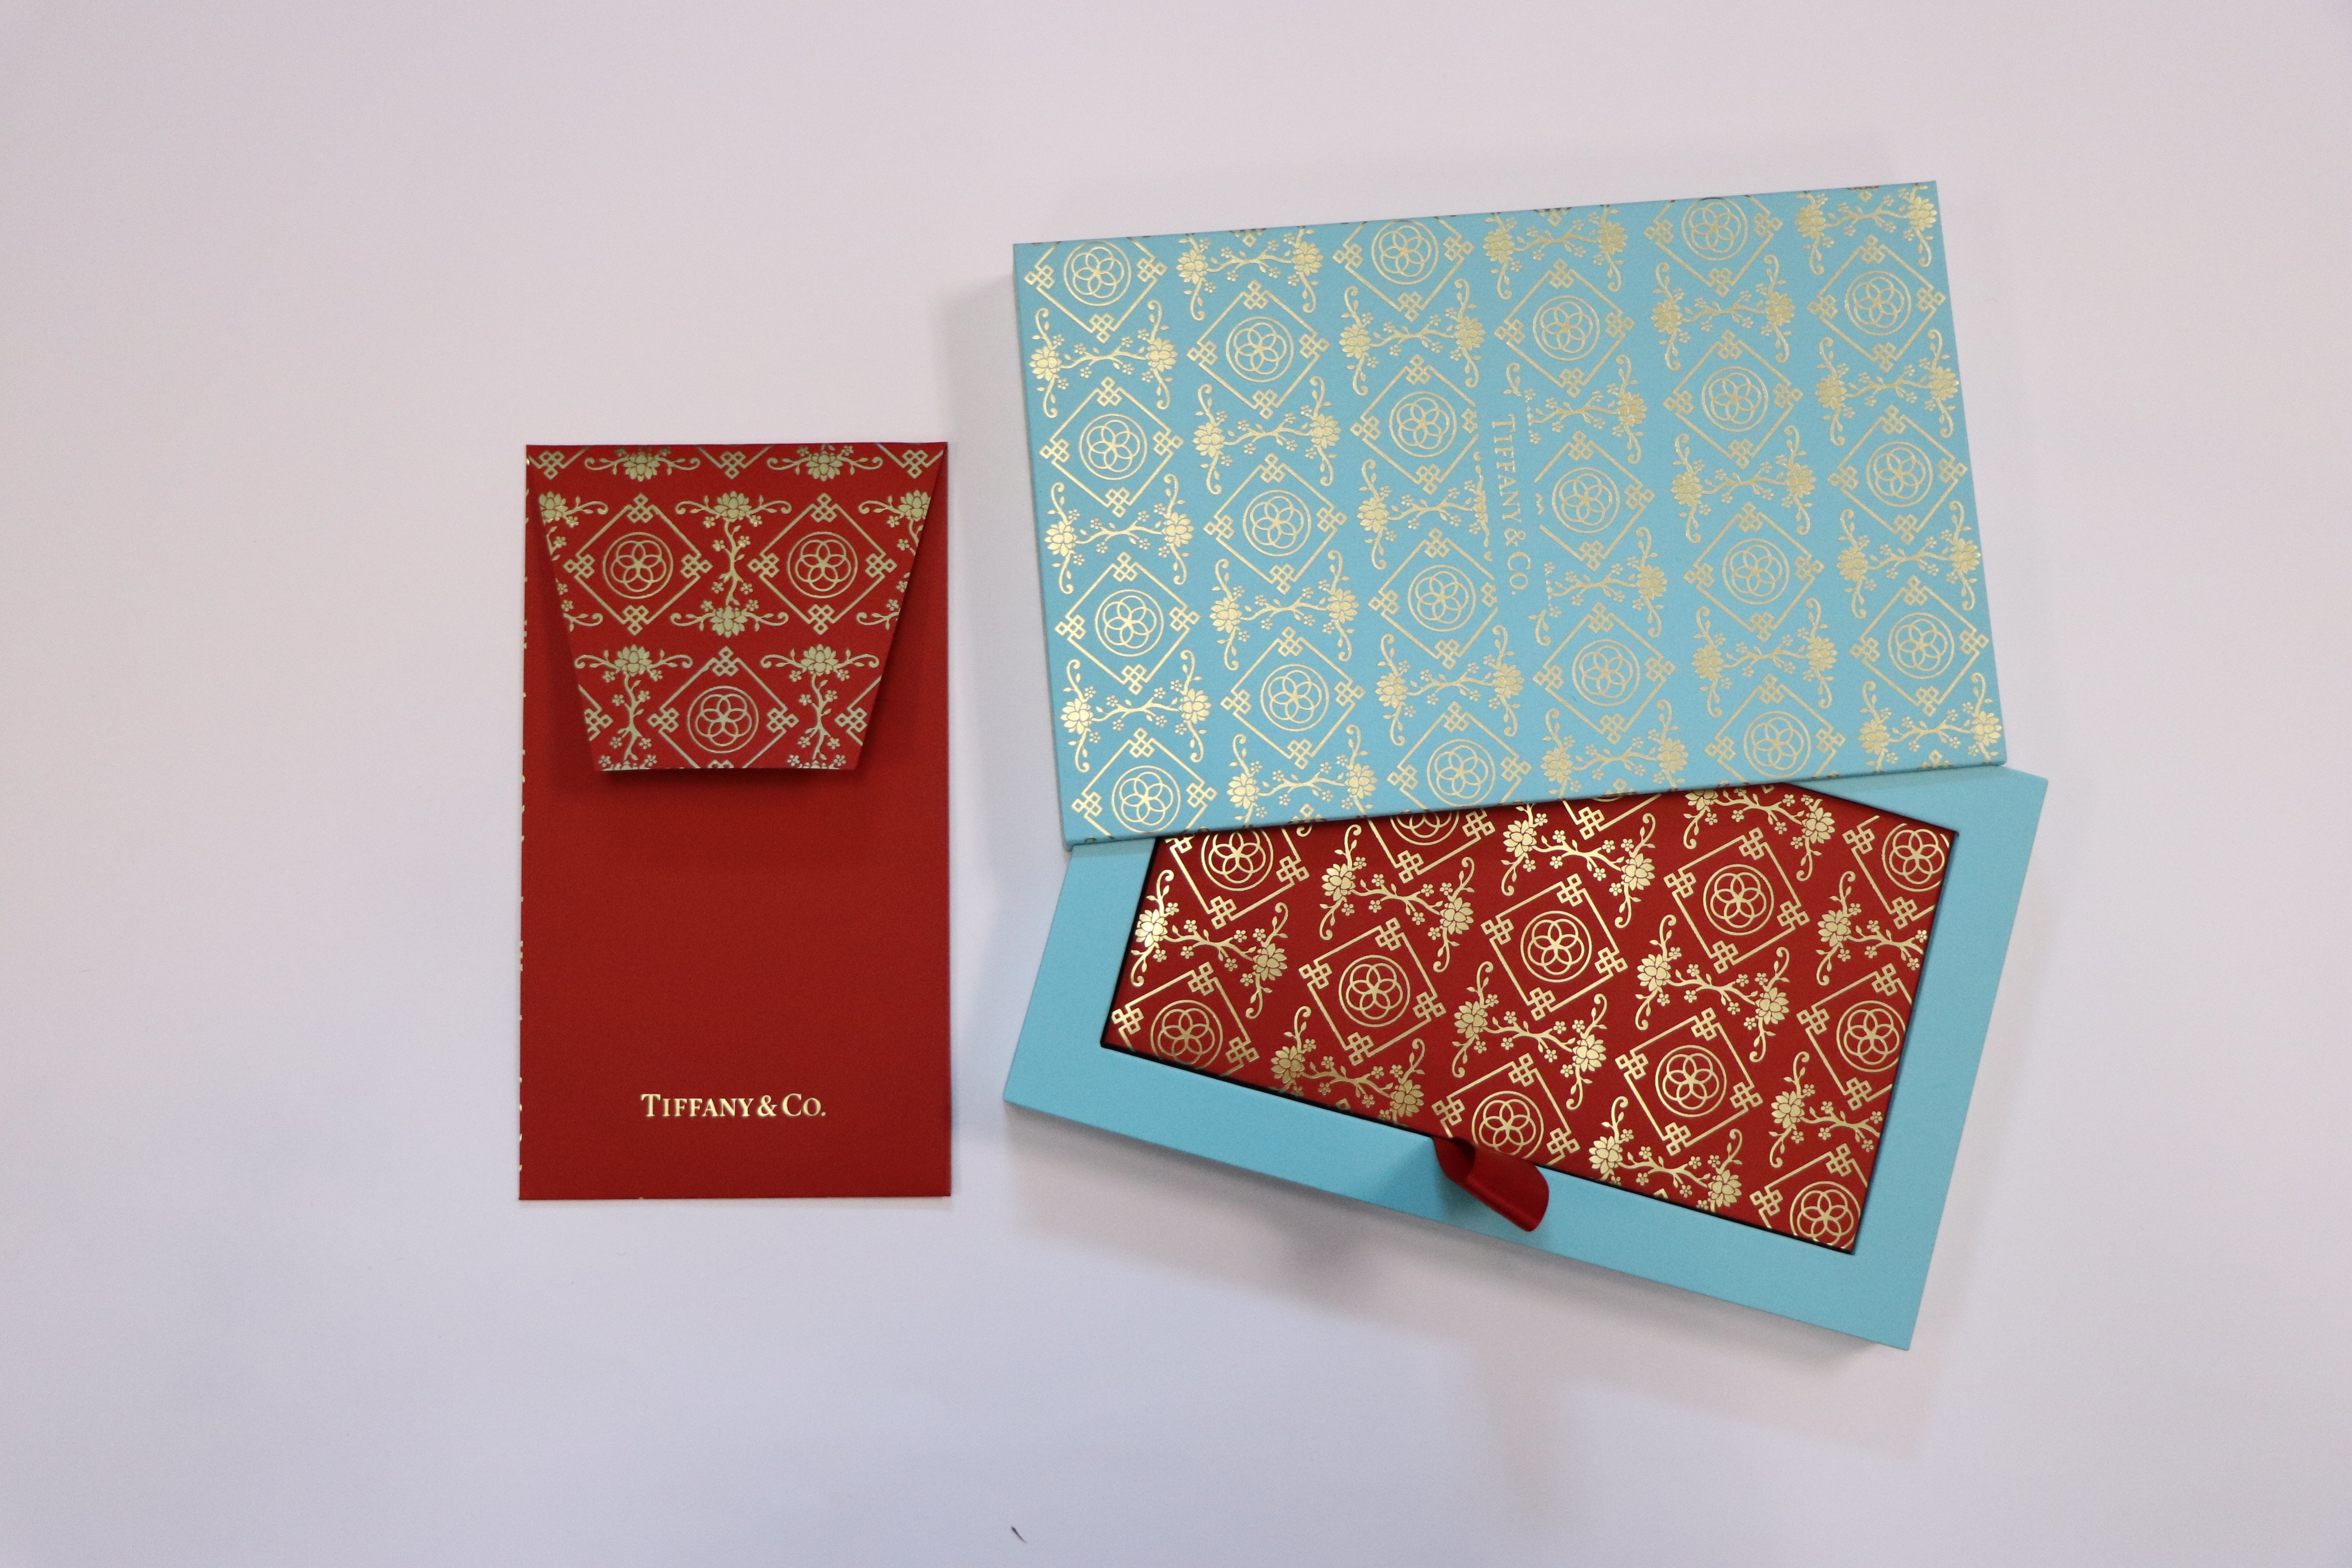 tiffany cos lunar new year 2018 red envelopes